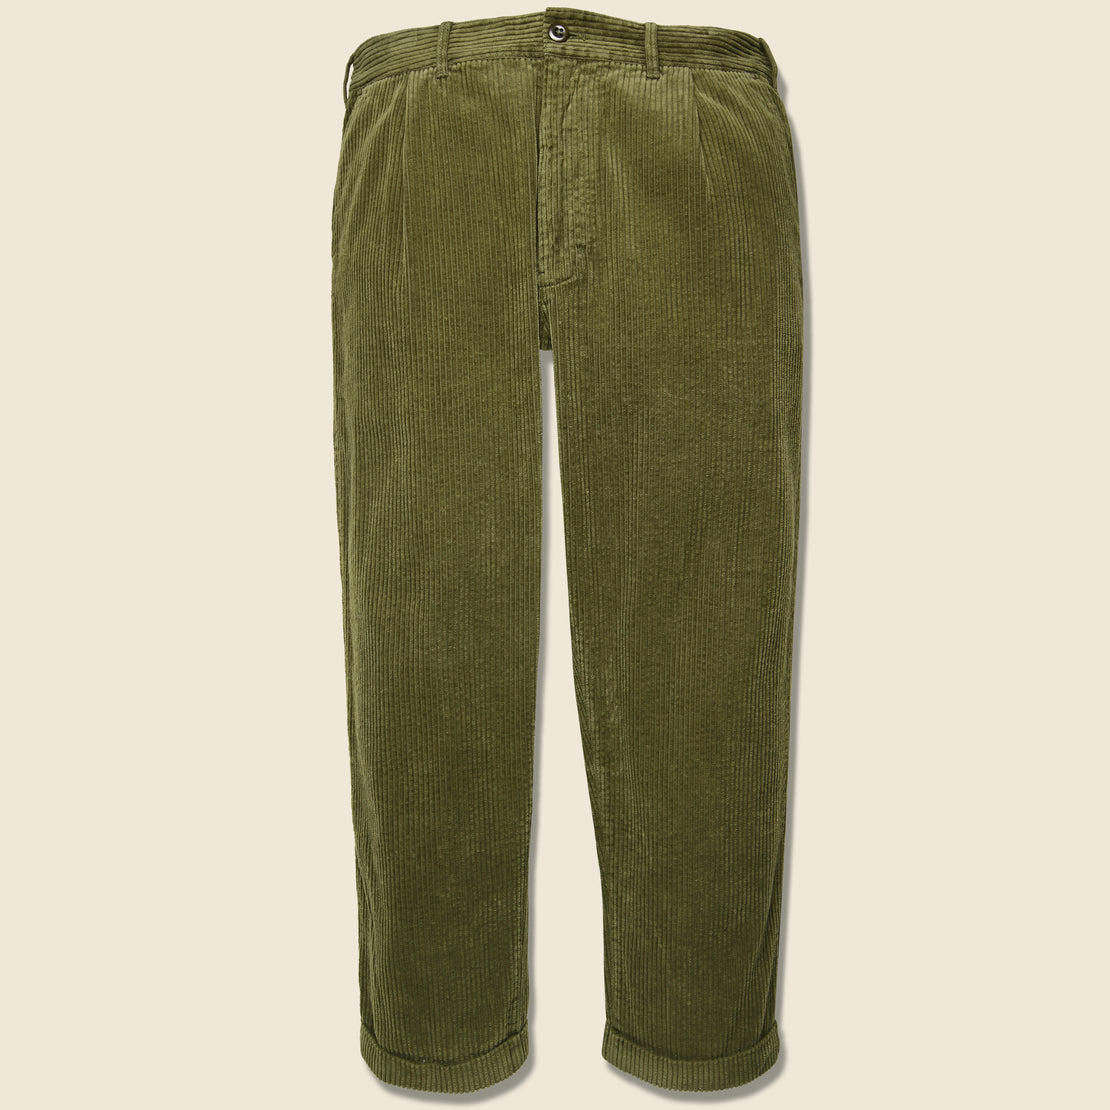 Alex Mill Rugged Corduroy Pleated Pant - Olive